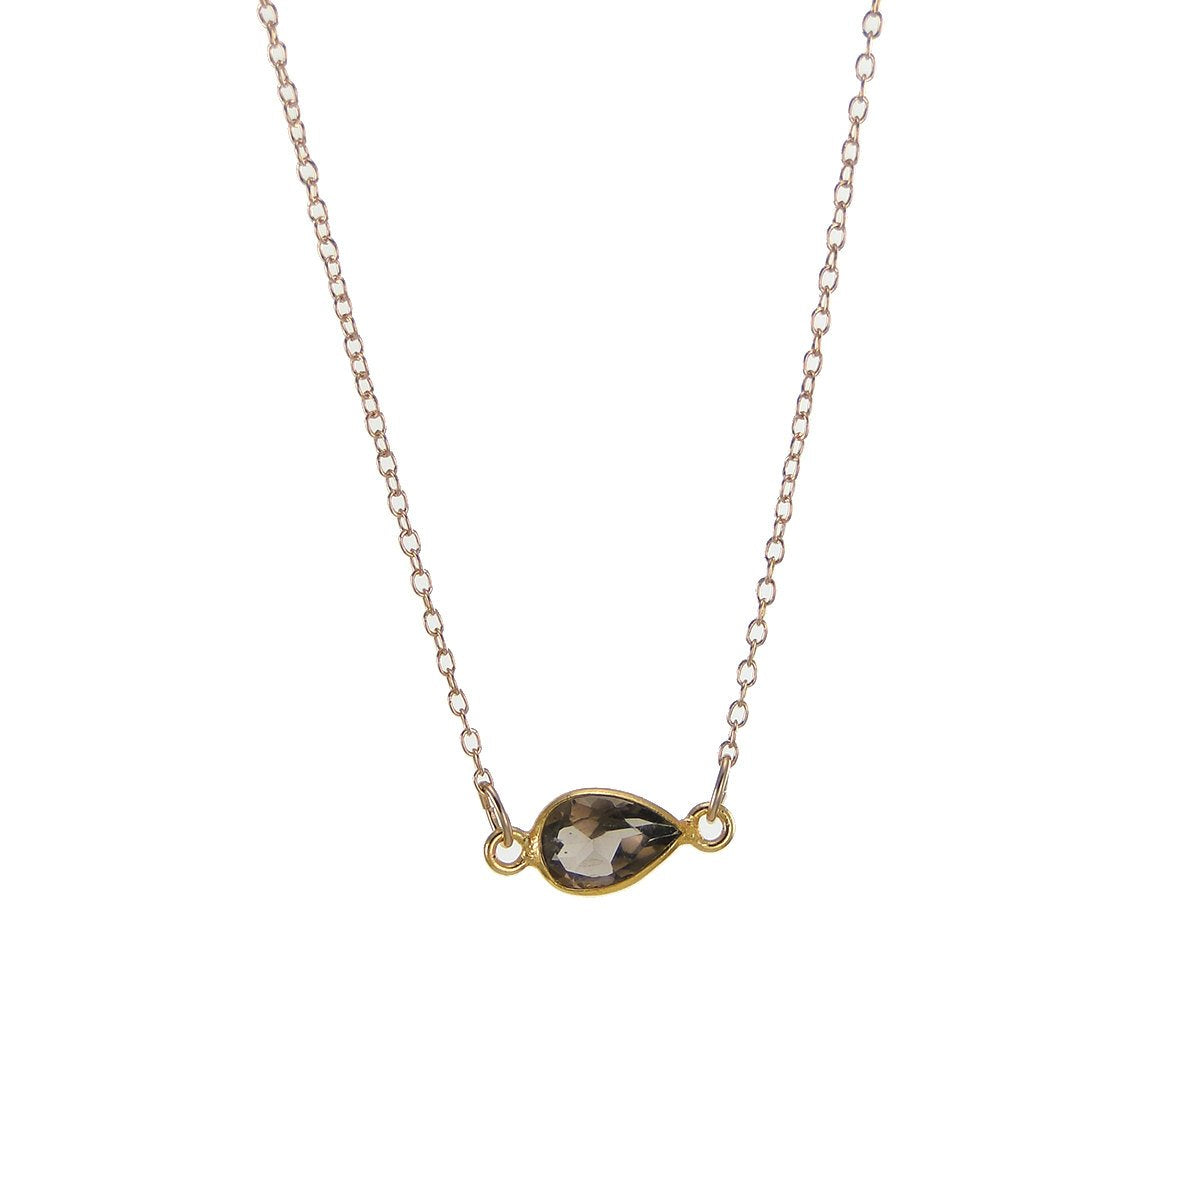 Smoky Quartz Delicate Gem Necklace - Tiny Stone Layered Necklace - Little Dainty 14K Gold Filled Necklace